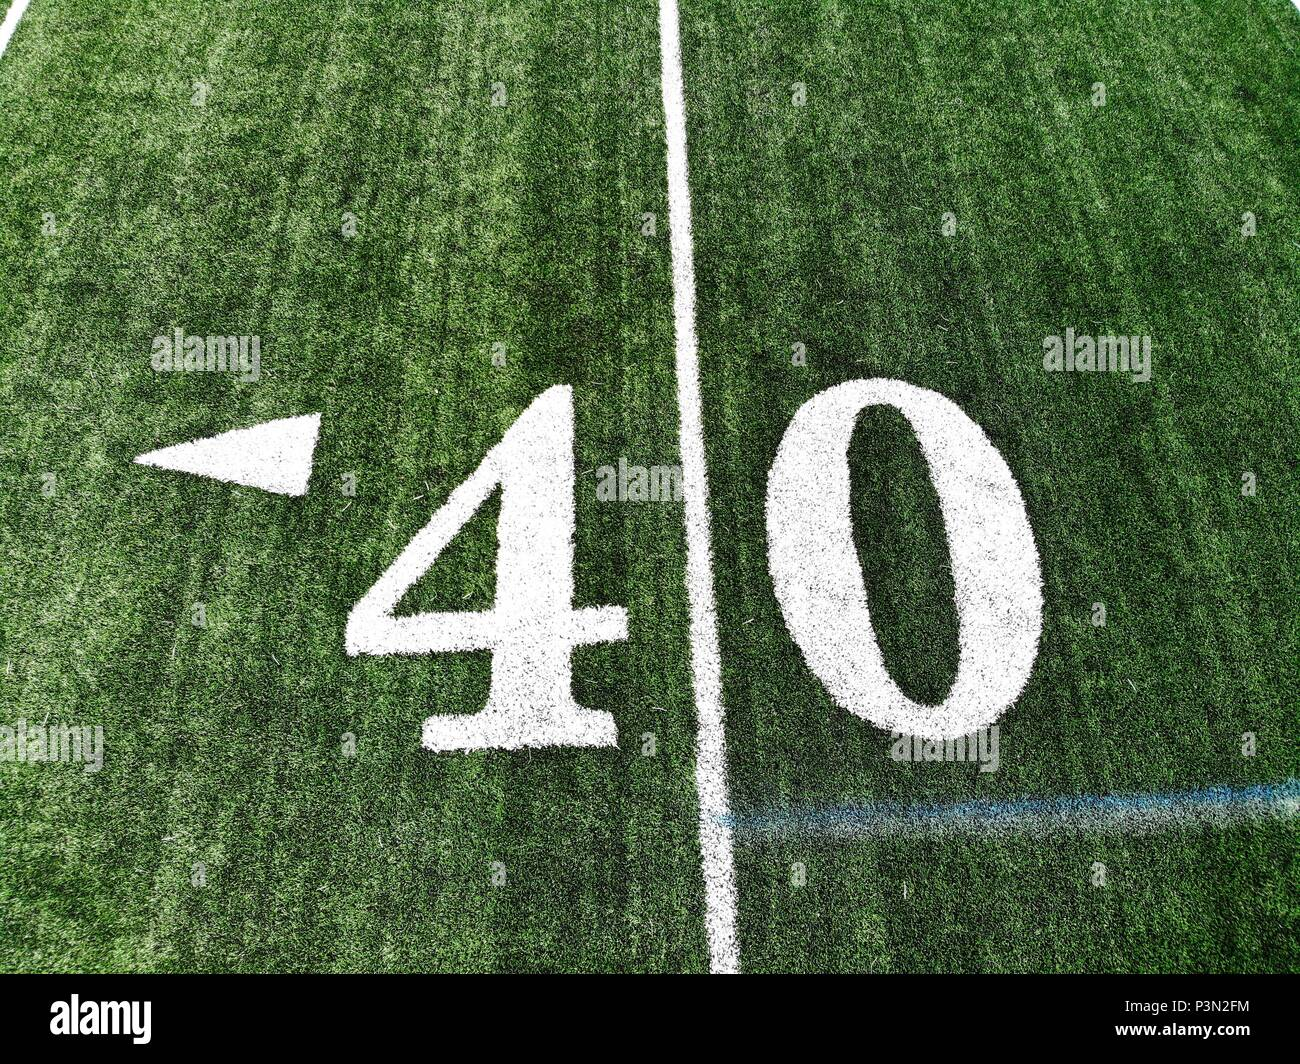 40 yard chalk mark on an green American football field taken from an aerial drone - Stock Image